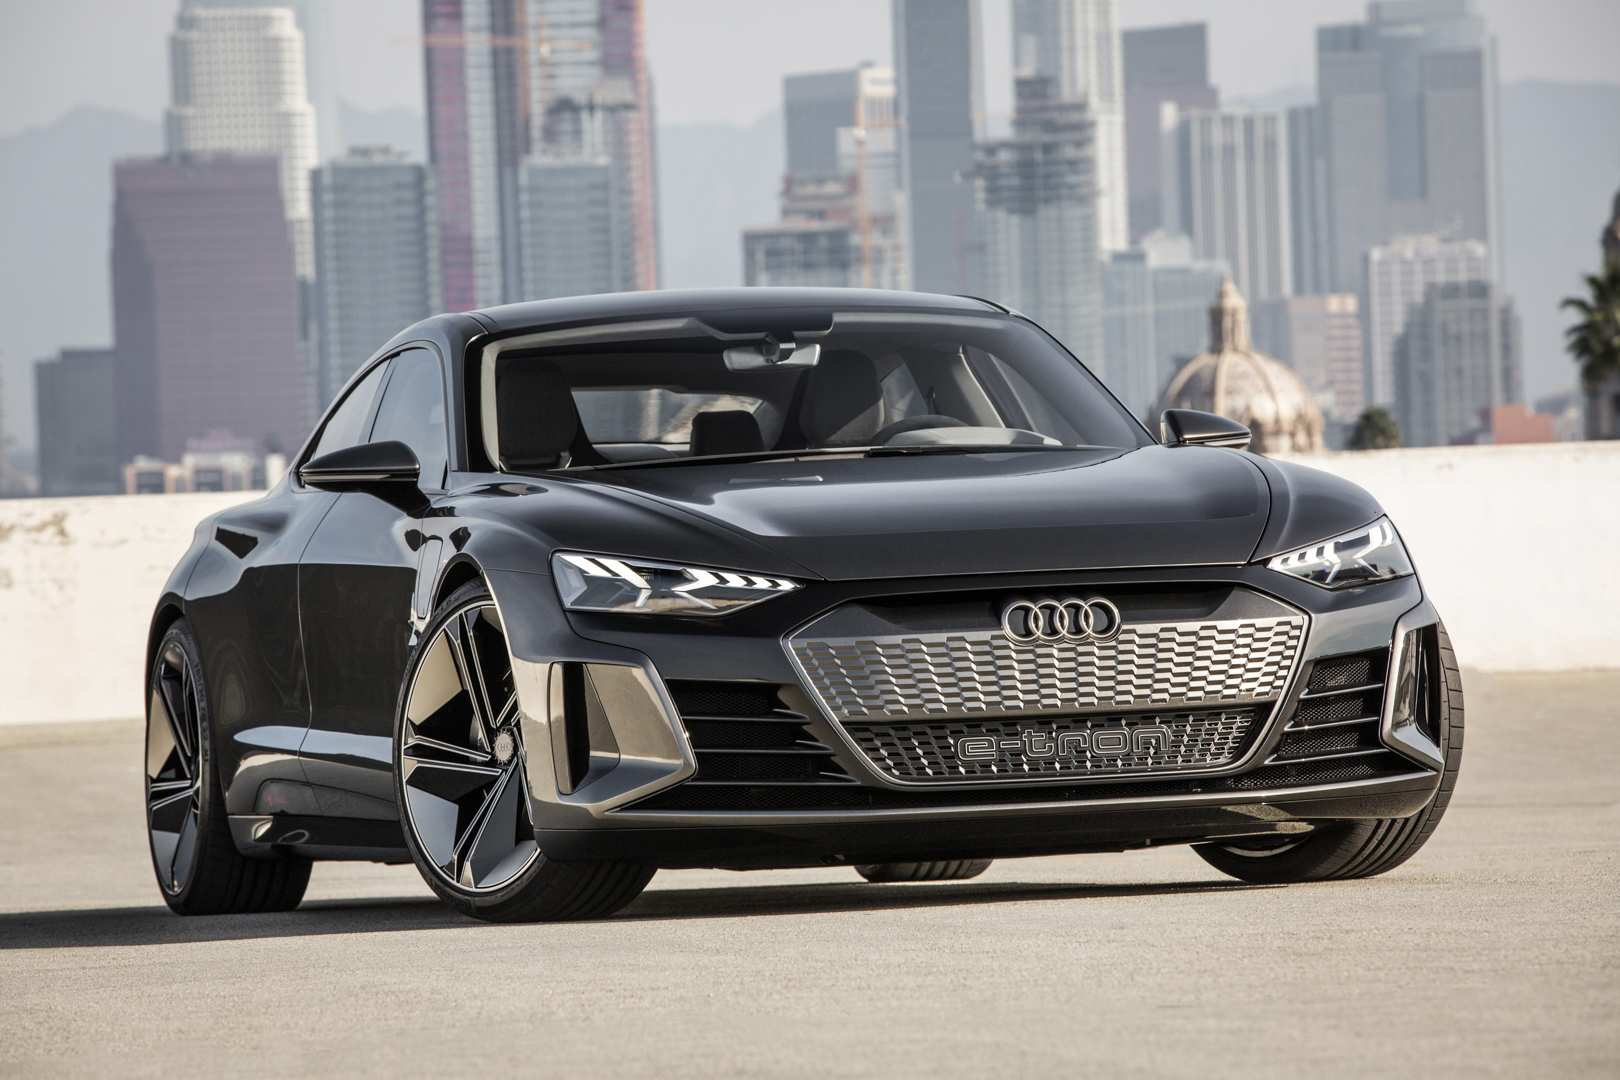 74 Concept of 2020 Audi E Tron Gt First Drive with 2020 Audi E Tron Gt